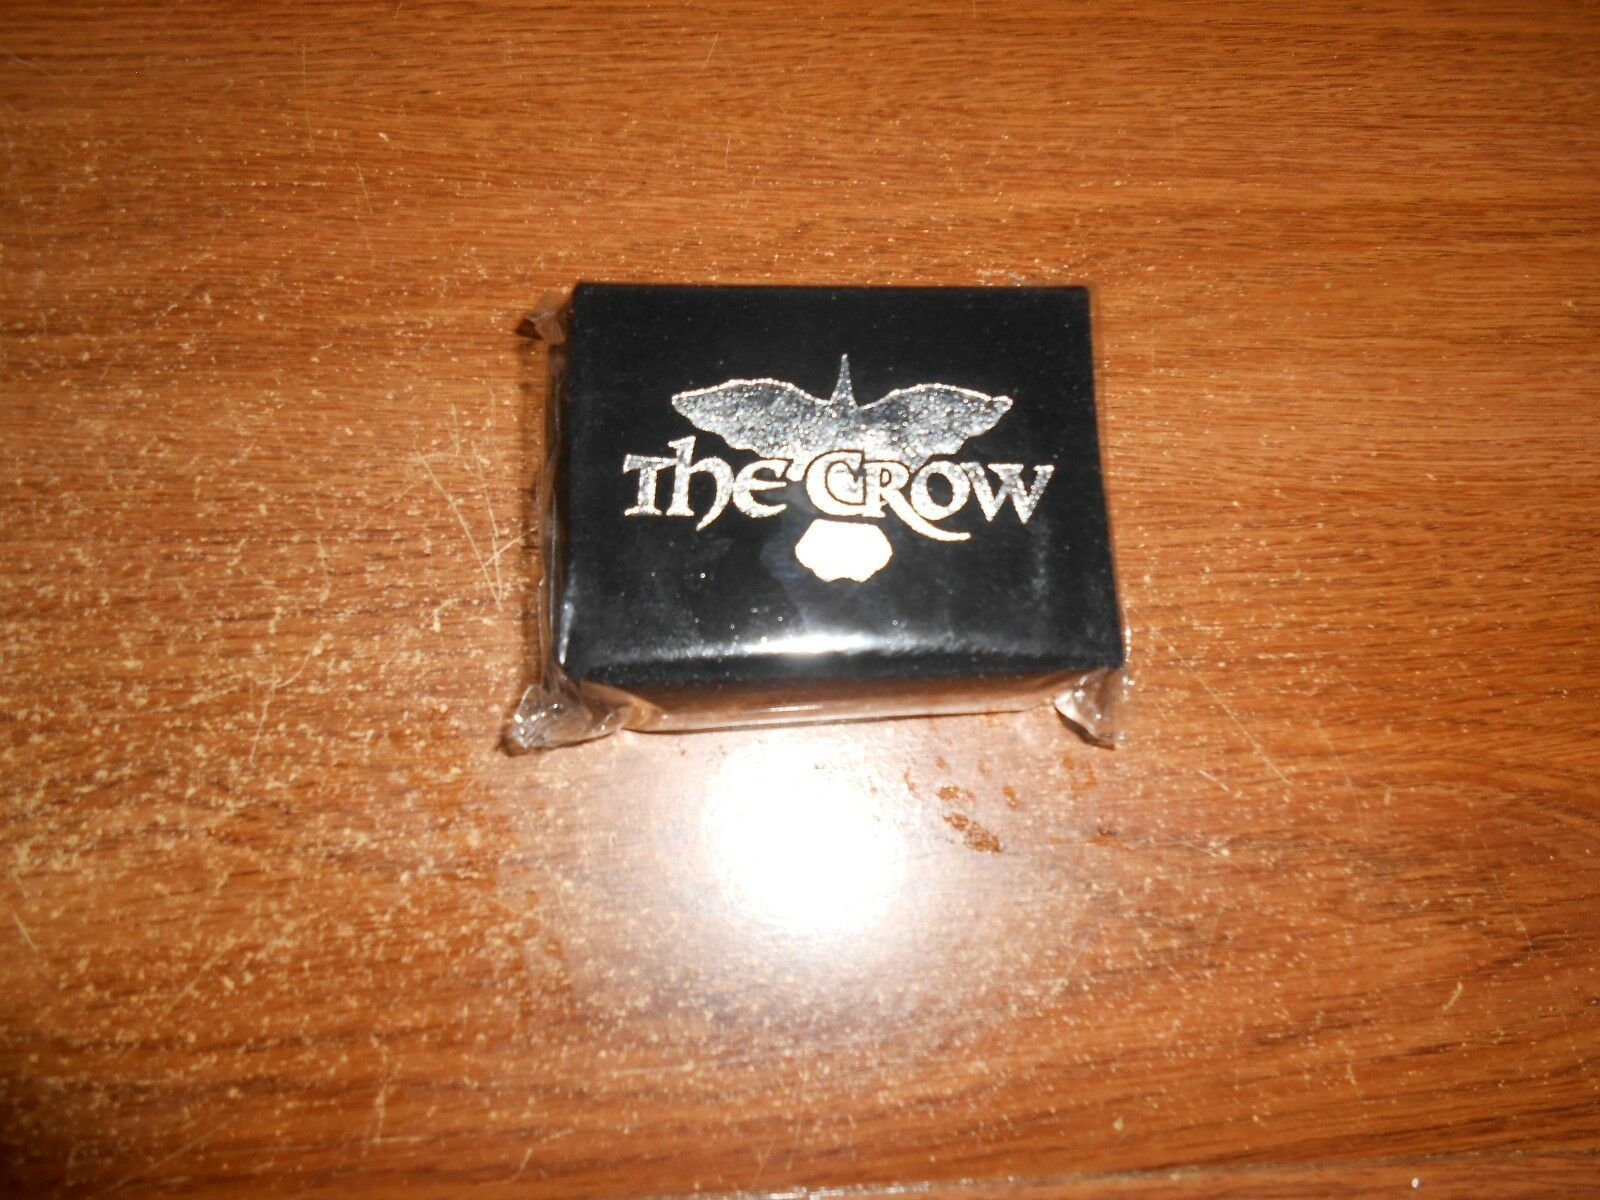 NECA VERY RARE 1990's THE CROW REAL LOVE IS FOREVER RING SET EVEN MORE RARE SEAL